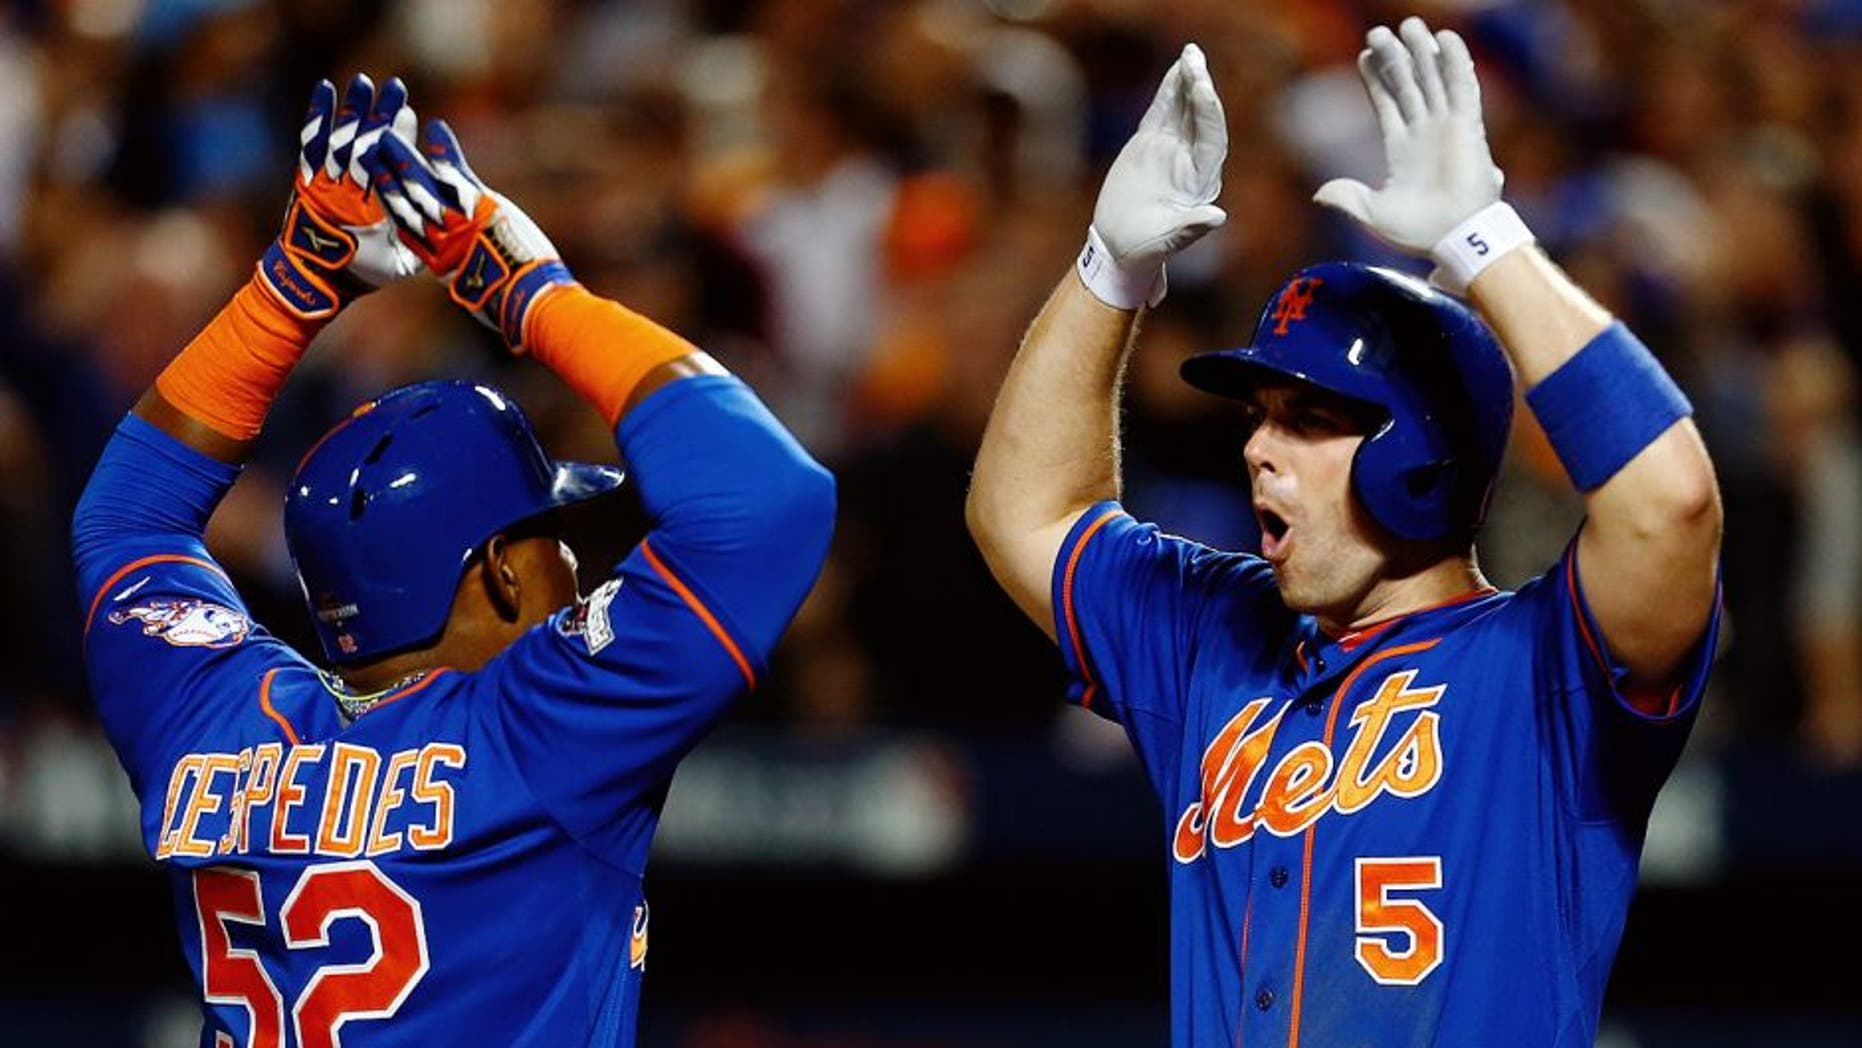 NEW YORK, NY - OCTOBER 12: Yoenis Cespedes #52 of the New York Mets celebrates with David Wright #5 after hitting a three run home run against Alex Wood #57 of the Los Angeles Dodgers in the fourth inning during game three of the National League Division Series at Citi Field on October 12, 2015 in New York City. (Photo by Mike Stobe/Getty Images)